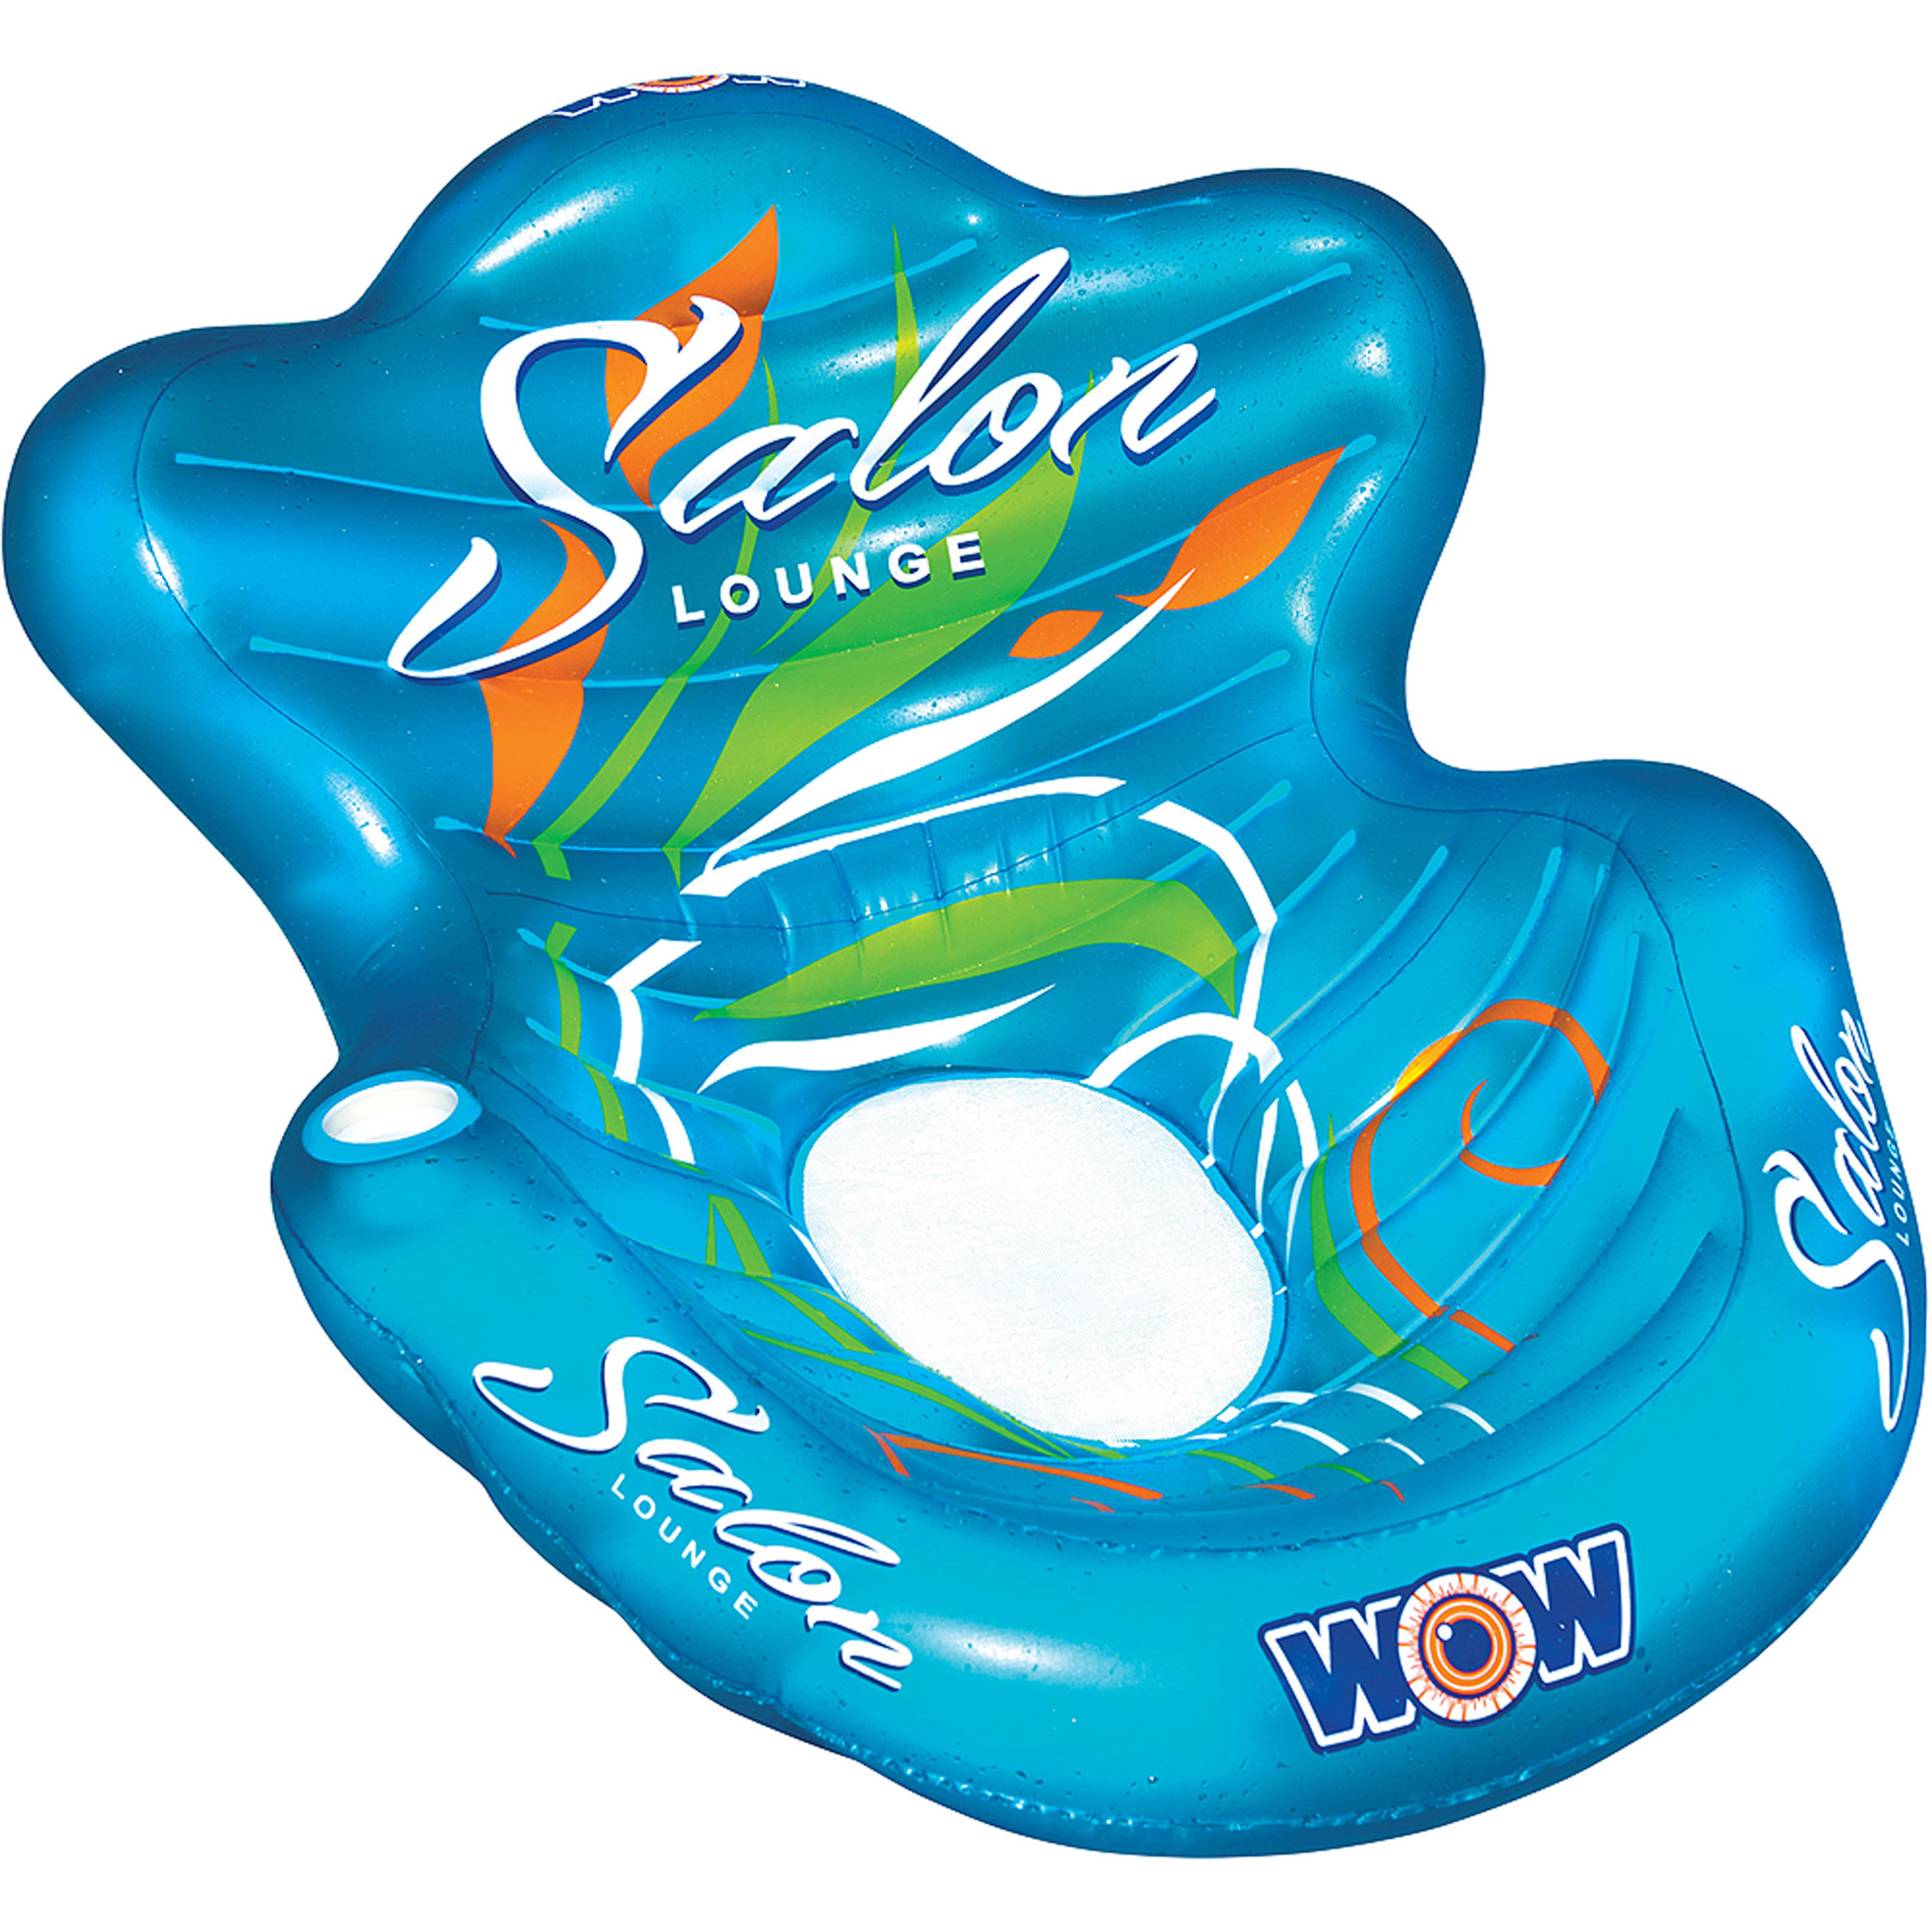 WOW World of Watersports, 14-2050, Salon Lounge, 1 Person Float